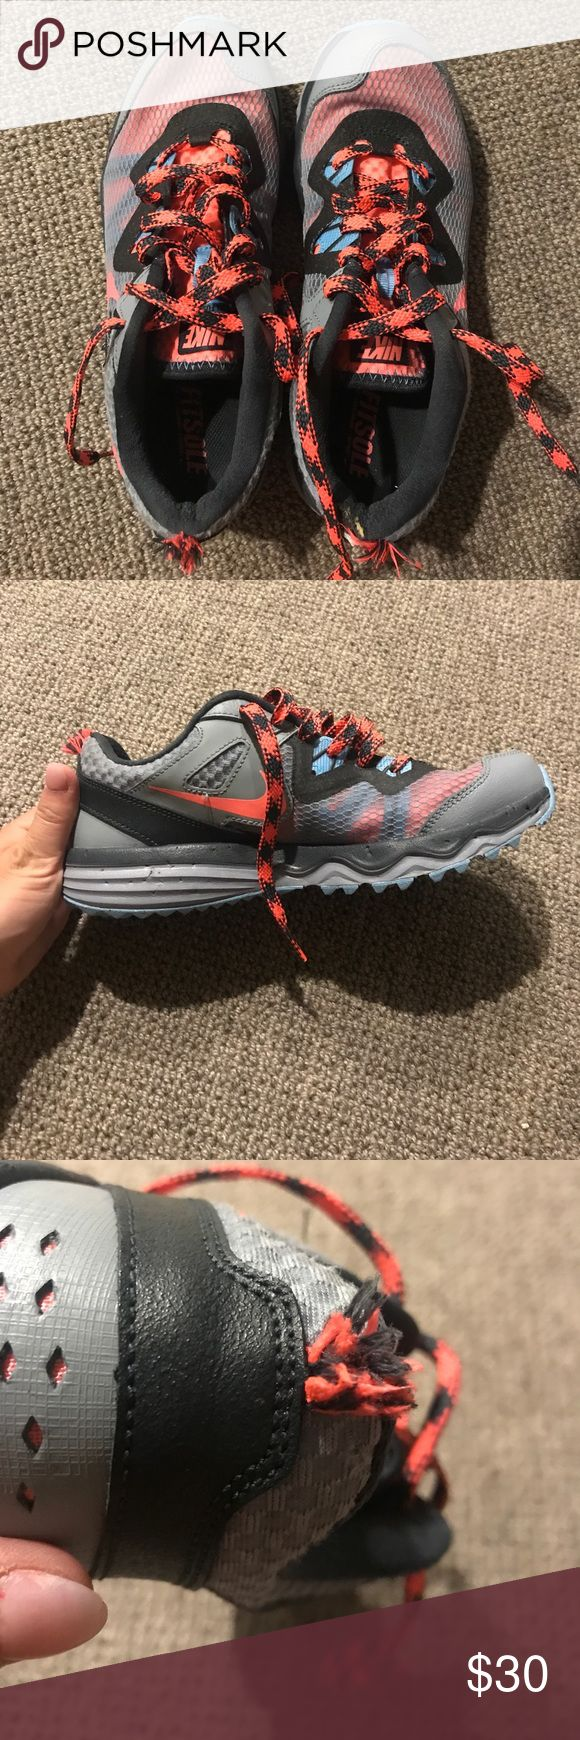 Nike Dual Fusion Running Shoes Light blue, pink and grey running sneakers by Nike. Only worn a couple times and in perfect condition for running. My dog did think it would be funny to chew off the some fabric at the back (see last two pics). Price reflecting condition. Trends are barely worn, but there are some esthetic issues by the heel as mentioned. Just don't fit me right. Nike Shoes Athletic Shoes